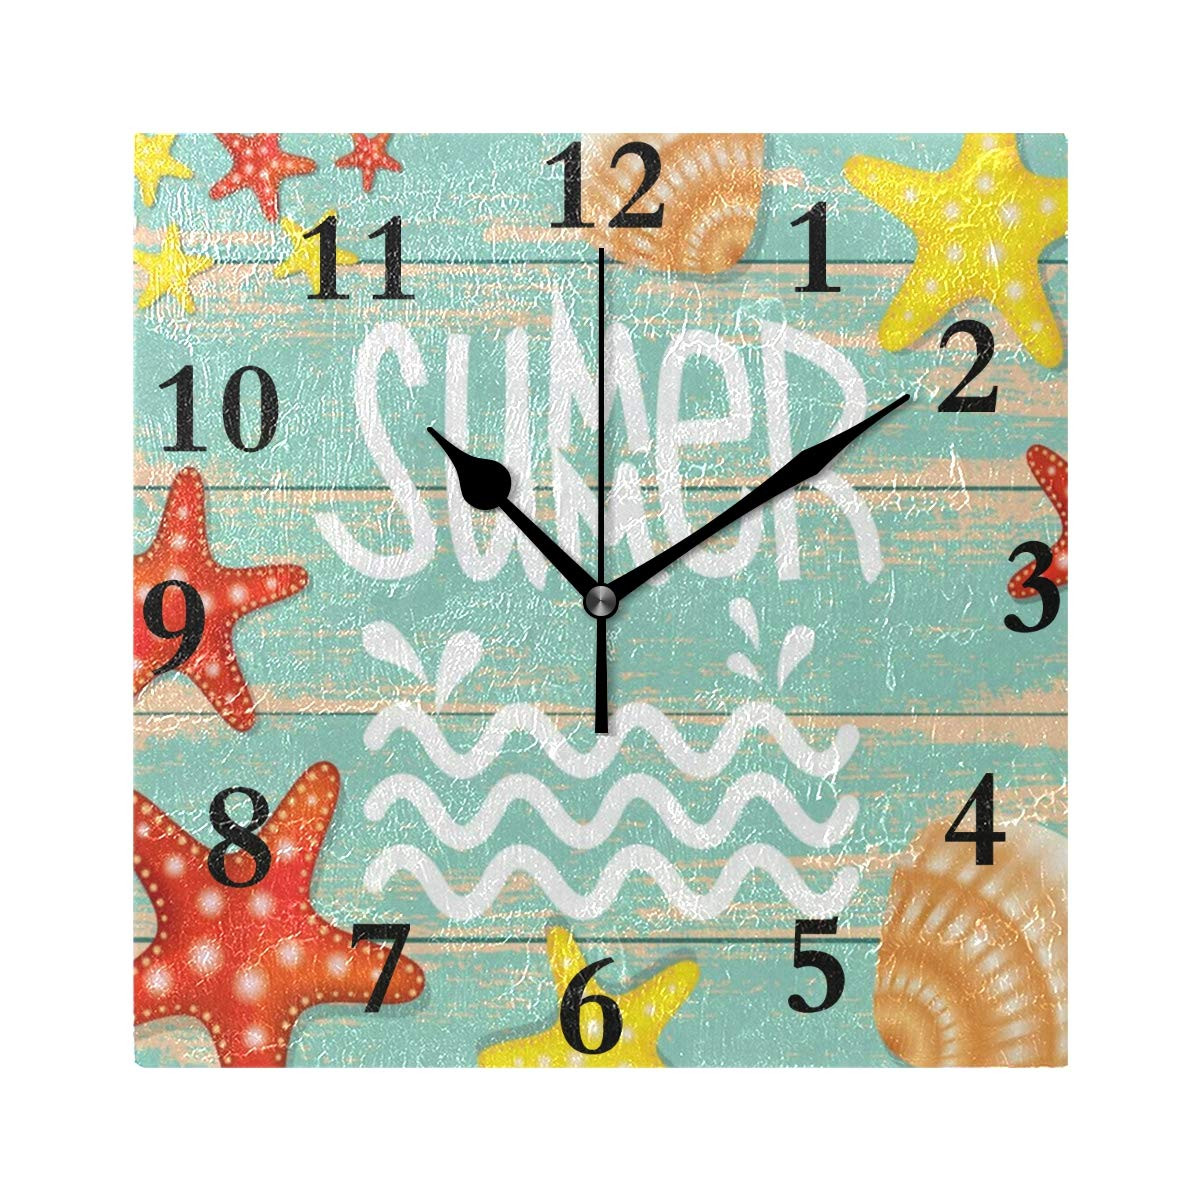 Chu warm Wall Clock Summer Vintage Starfish Silent Non Ticking Decorative Square Digital Clocks Indoor Outdoor Kitchen Bedroom Living Room